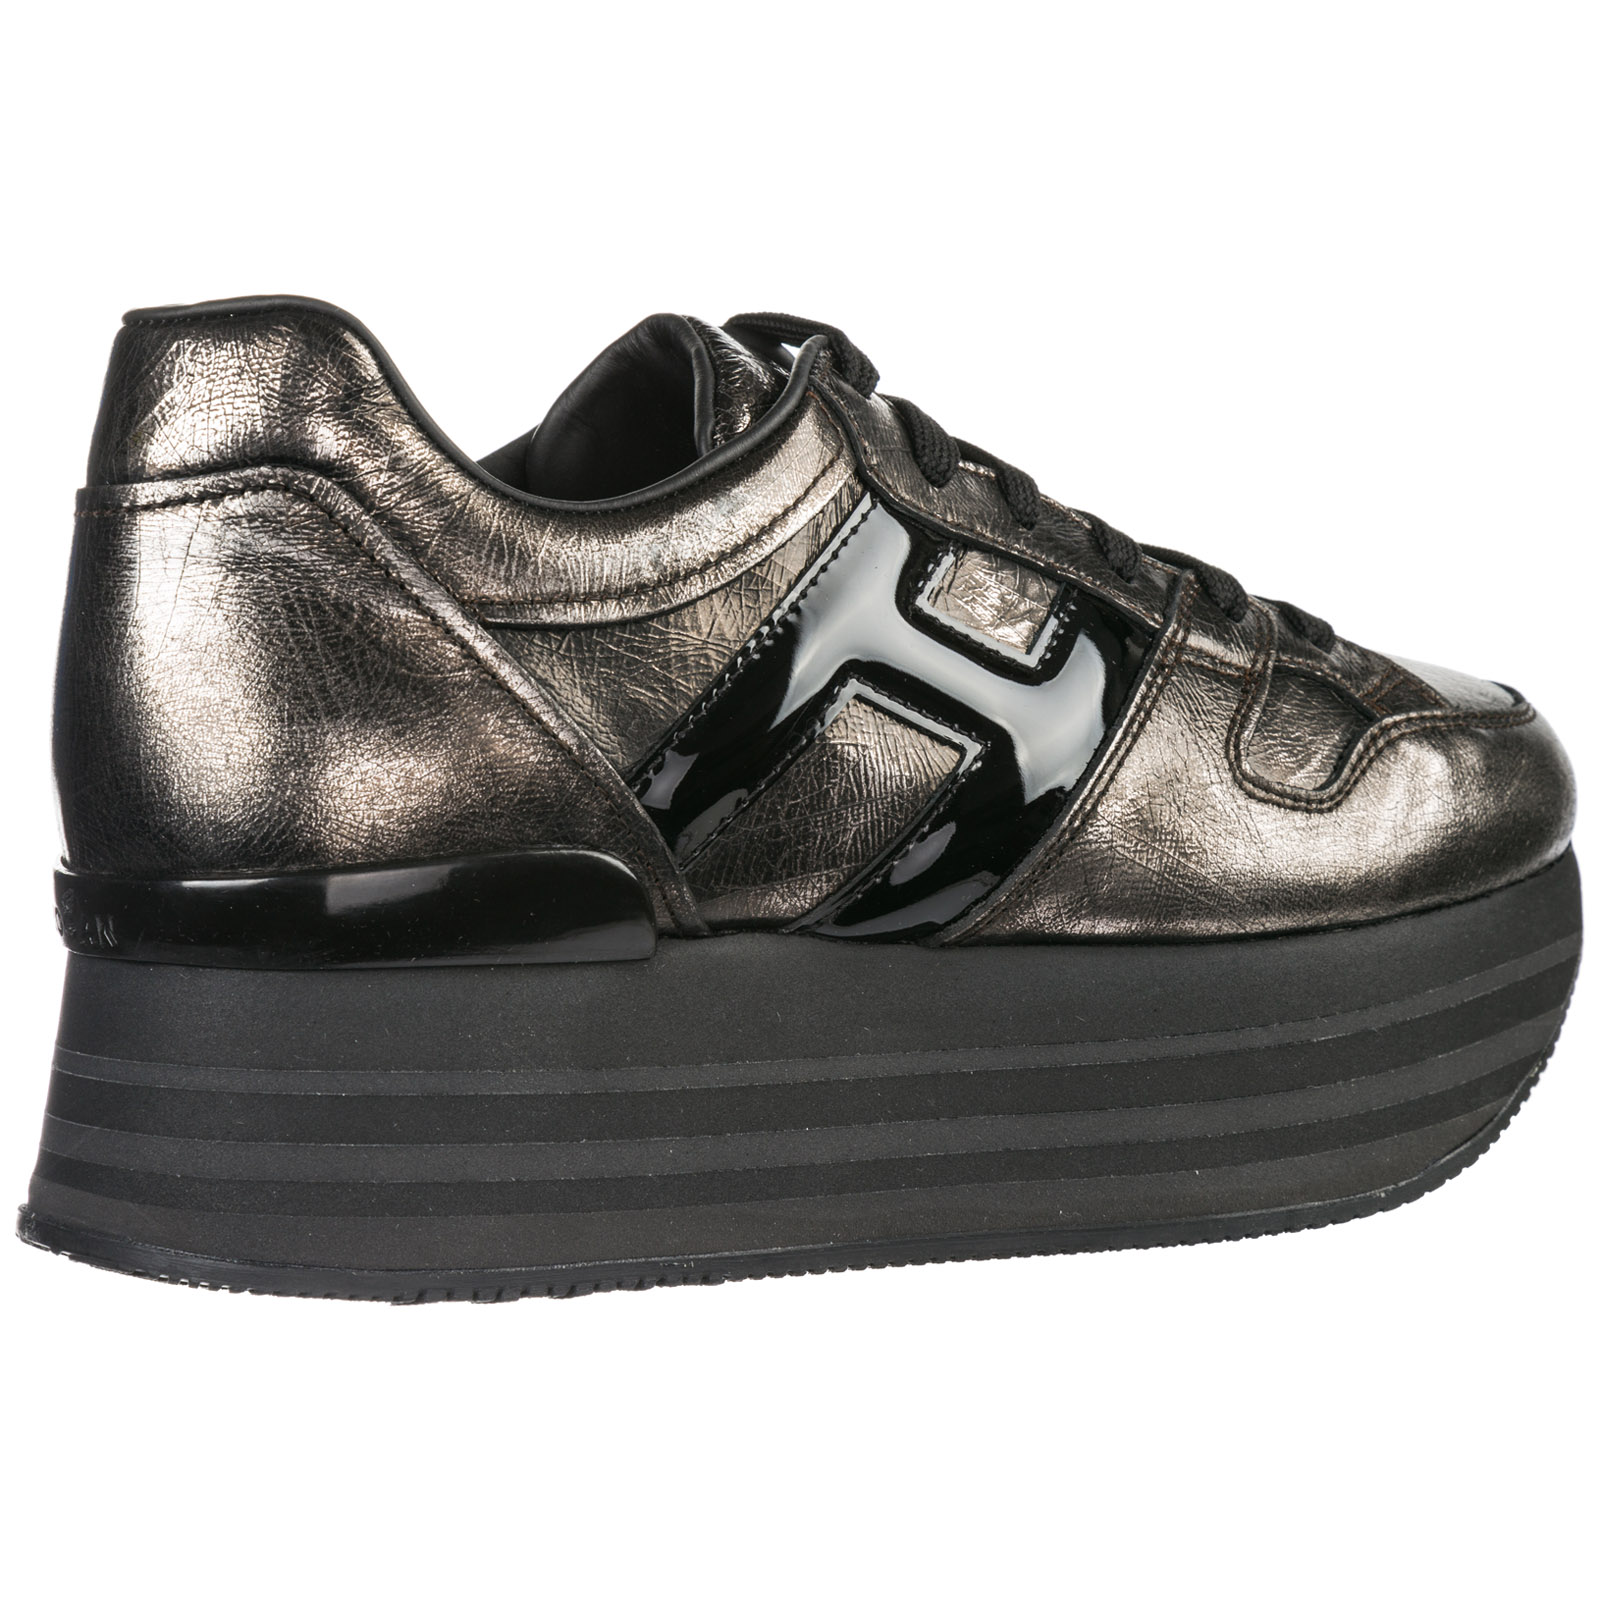 Women's shoes leather trainers sneakers maxi h222